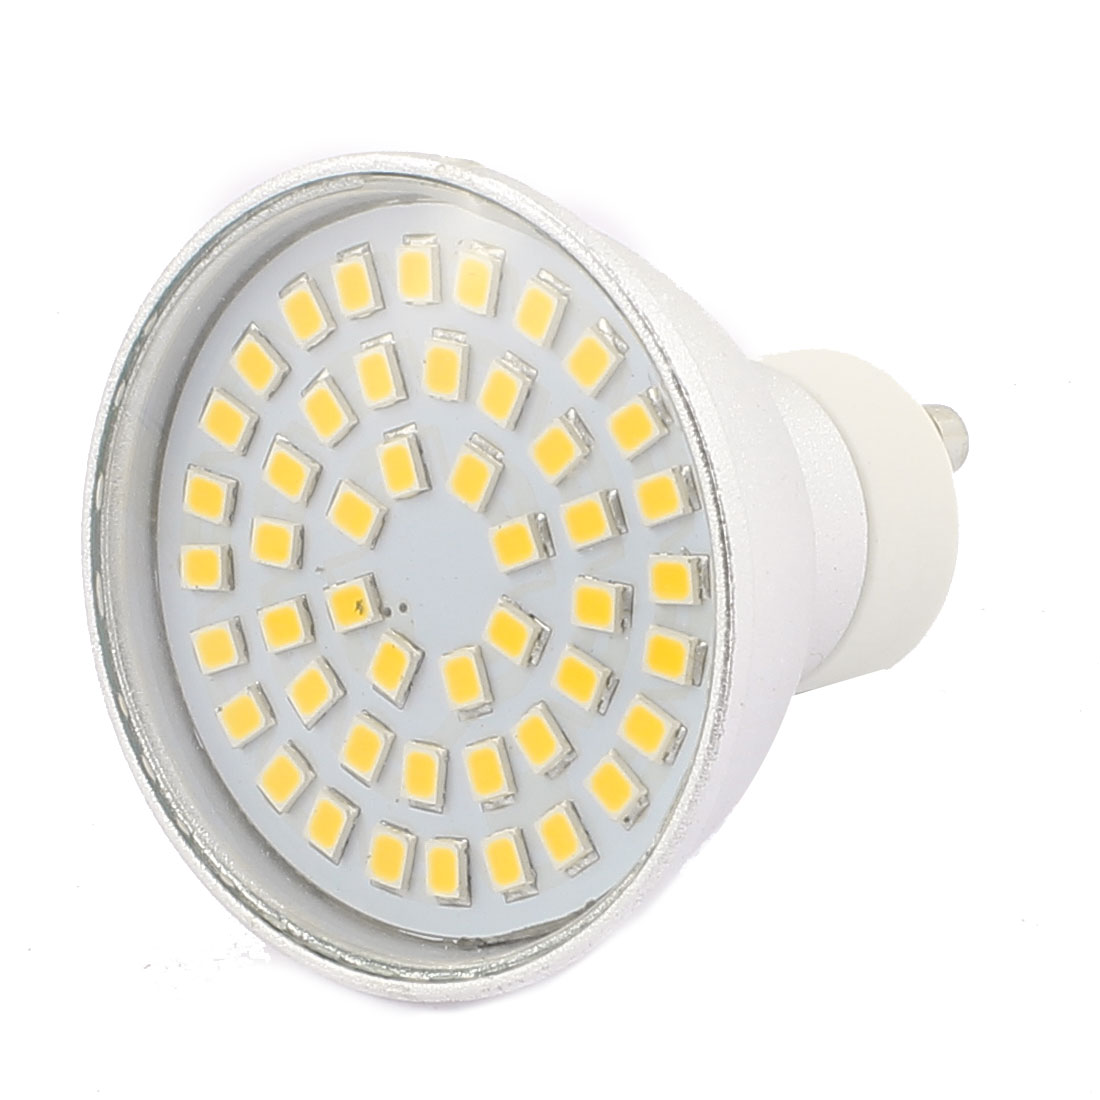 GU10 SMD 2835 48 LEDs 4W Aluminum Energy-Saving LED Bulb Warm White AC 220V-240V